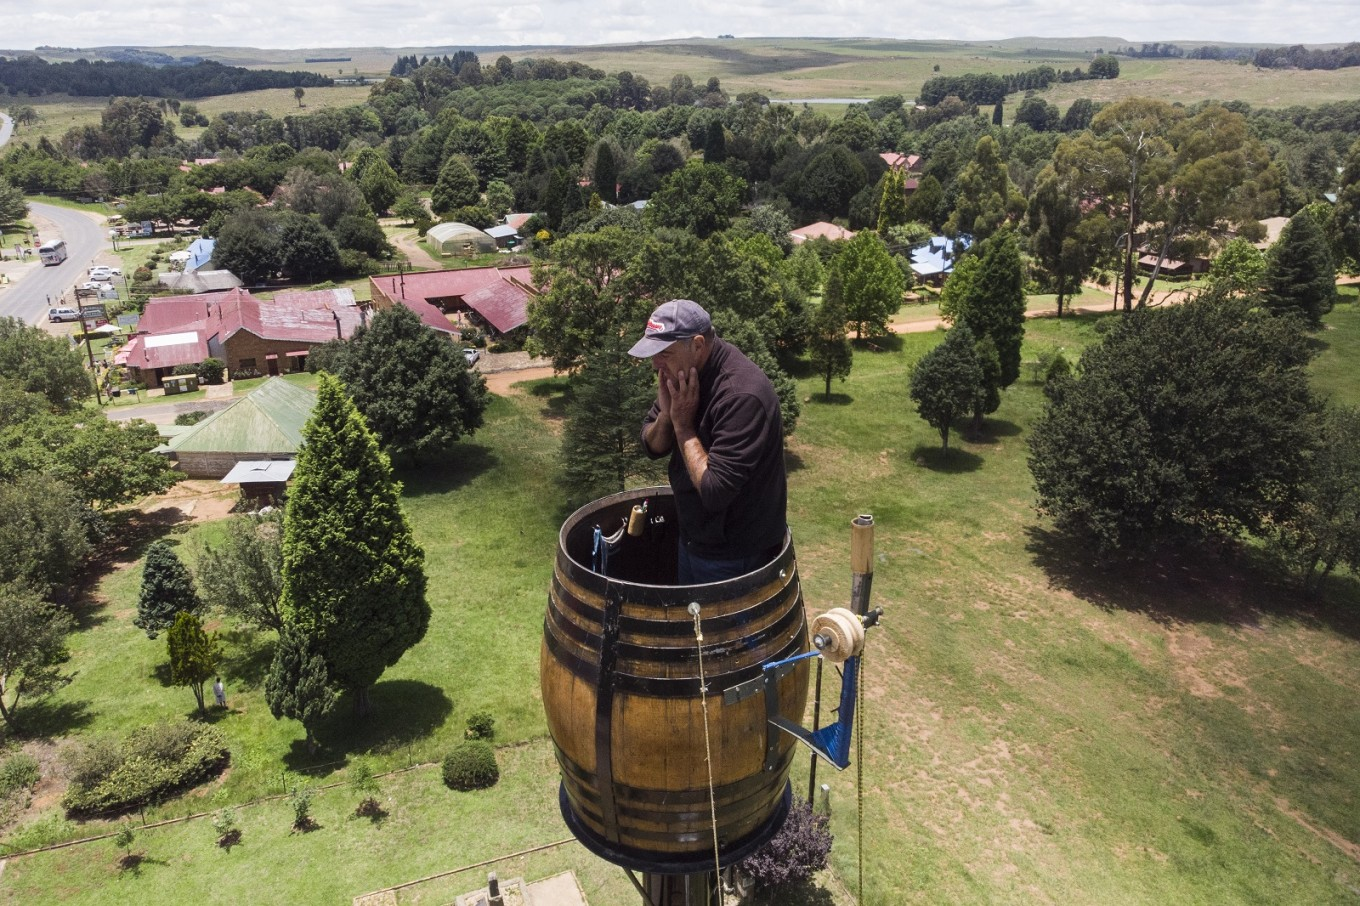 Suspended in a barrel, South African man set to break 'pole sitting' record